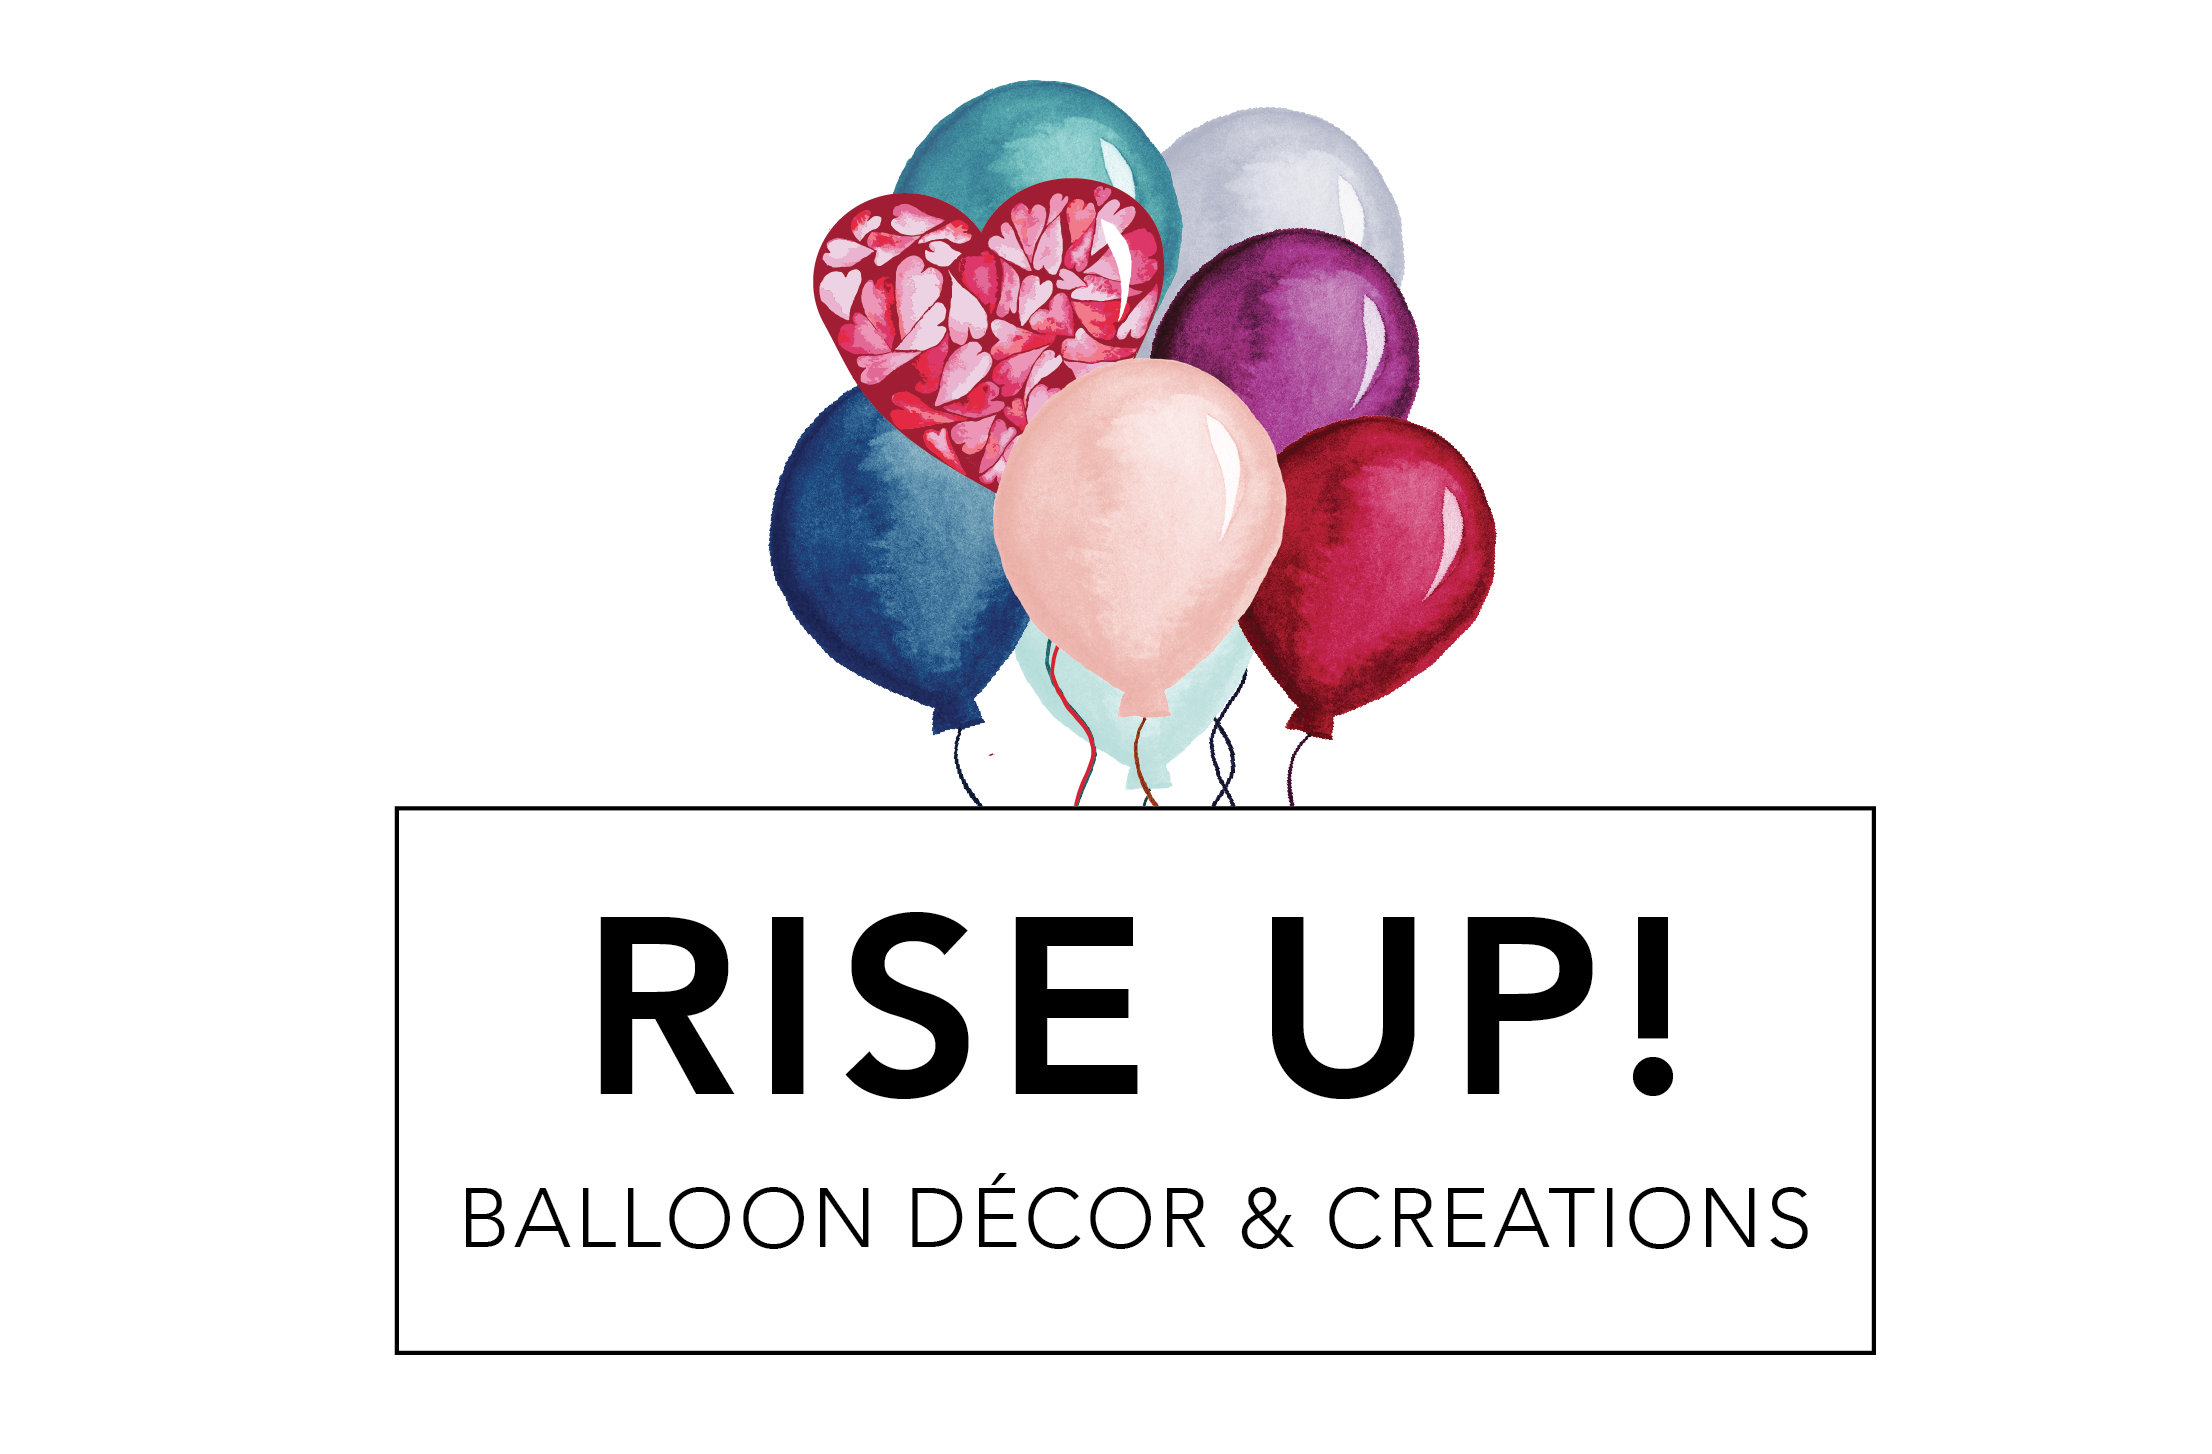 Rise Up! Balloon Decor & Creations